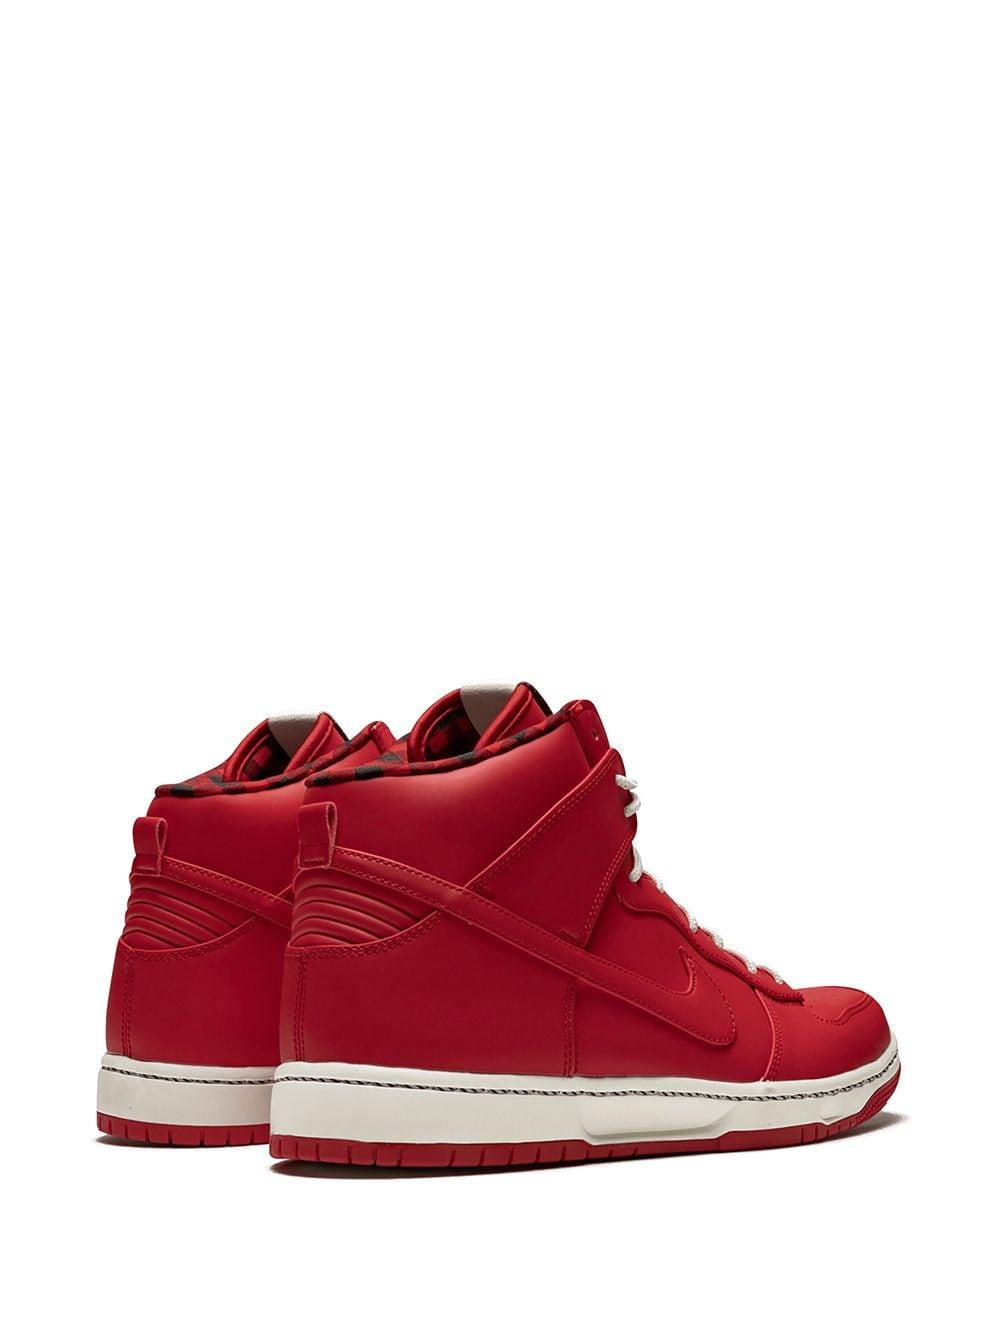 Nike Dunk Ultra Shoes - Size 12.5 in Red for Men